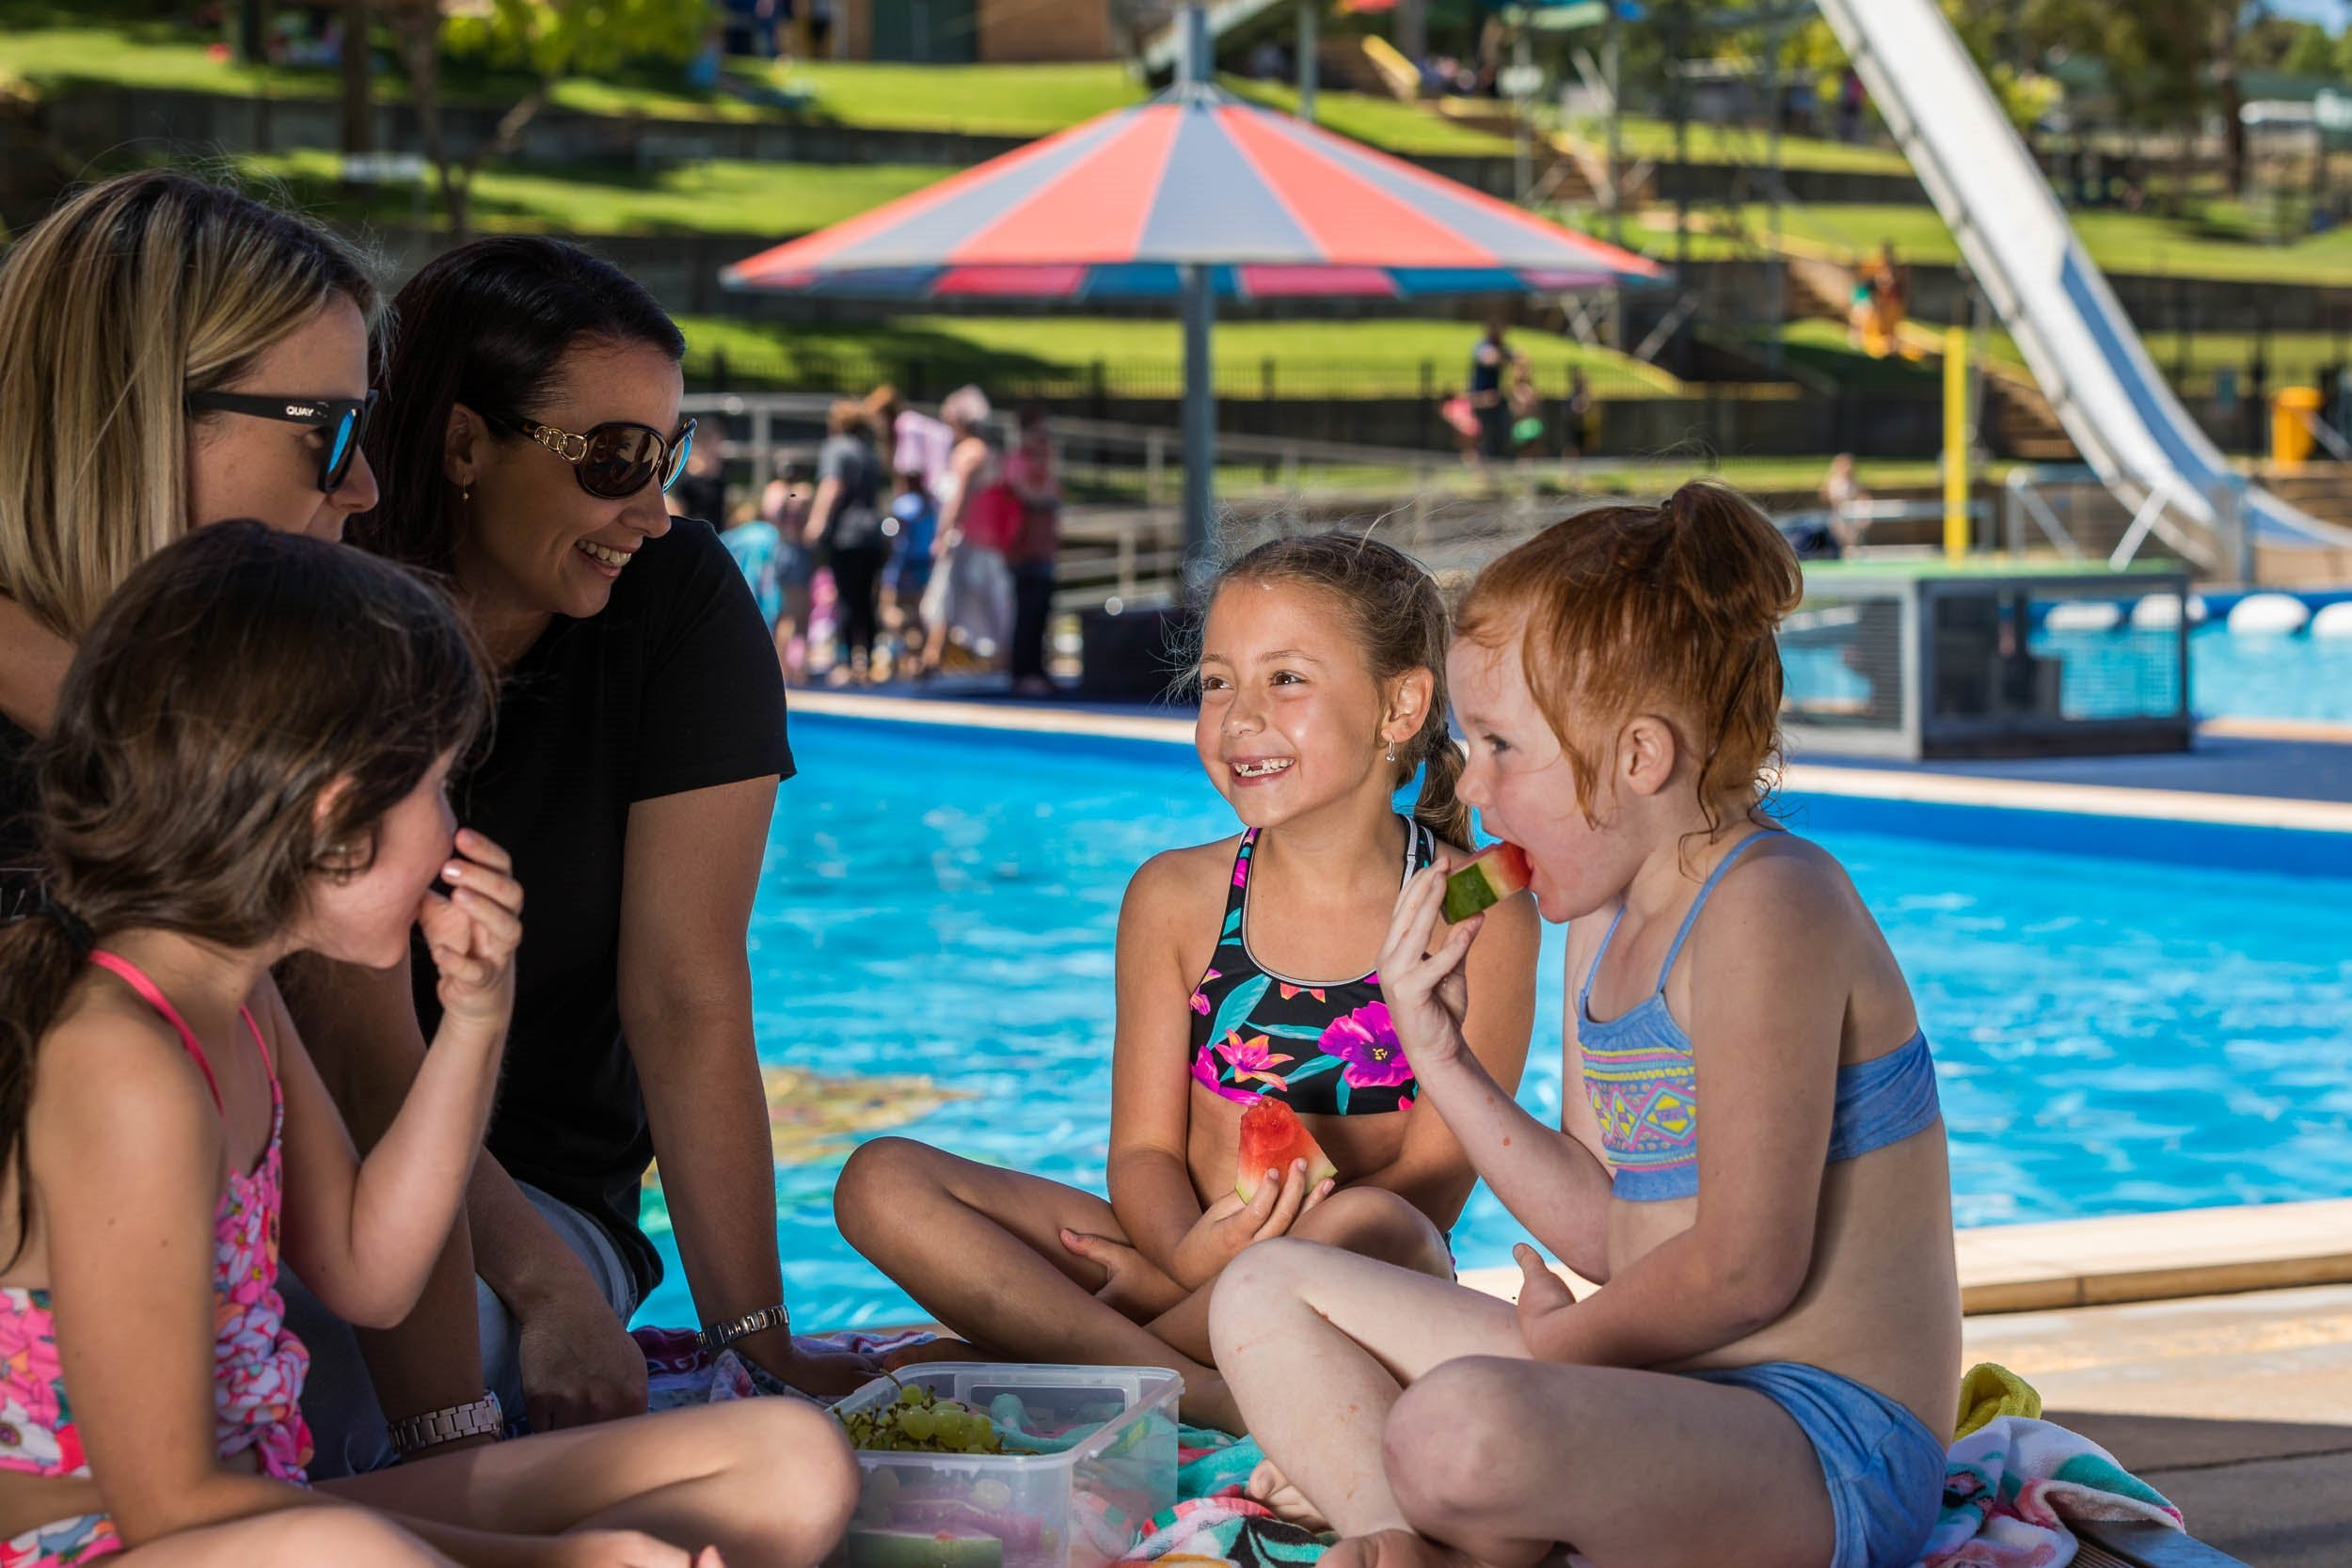 Australia Day fun at Lake Talbot Water Park - Accommodation Resorts